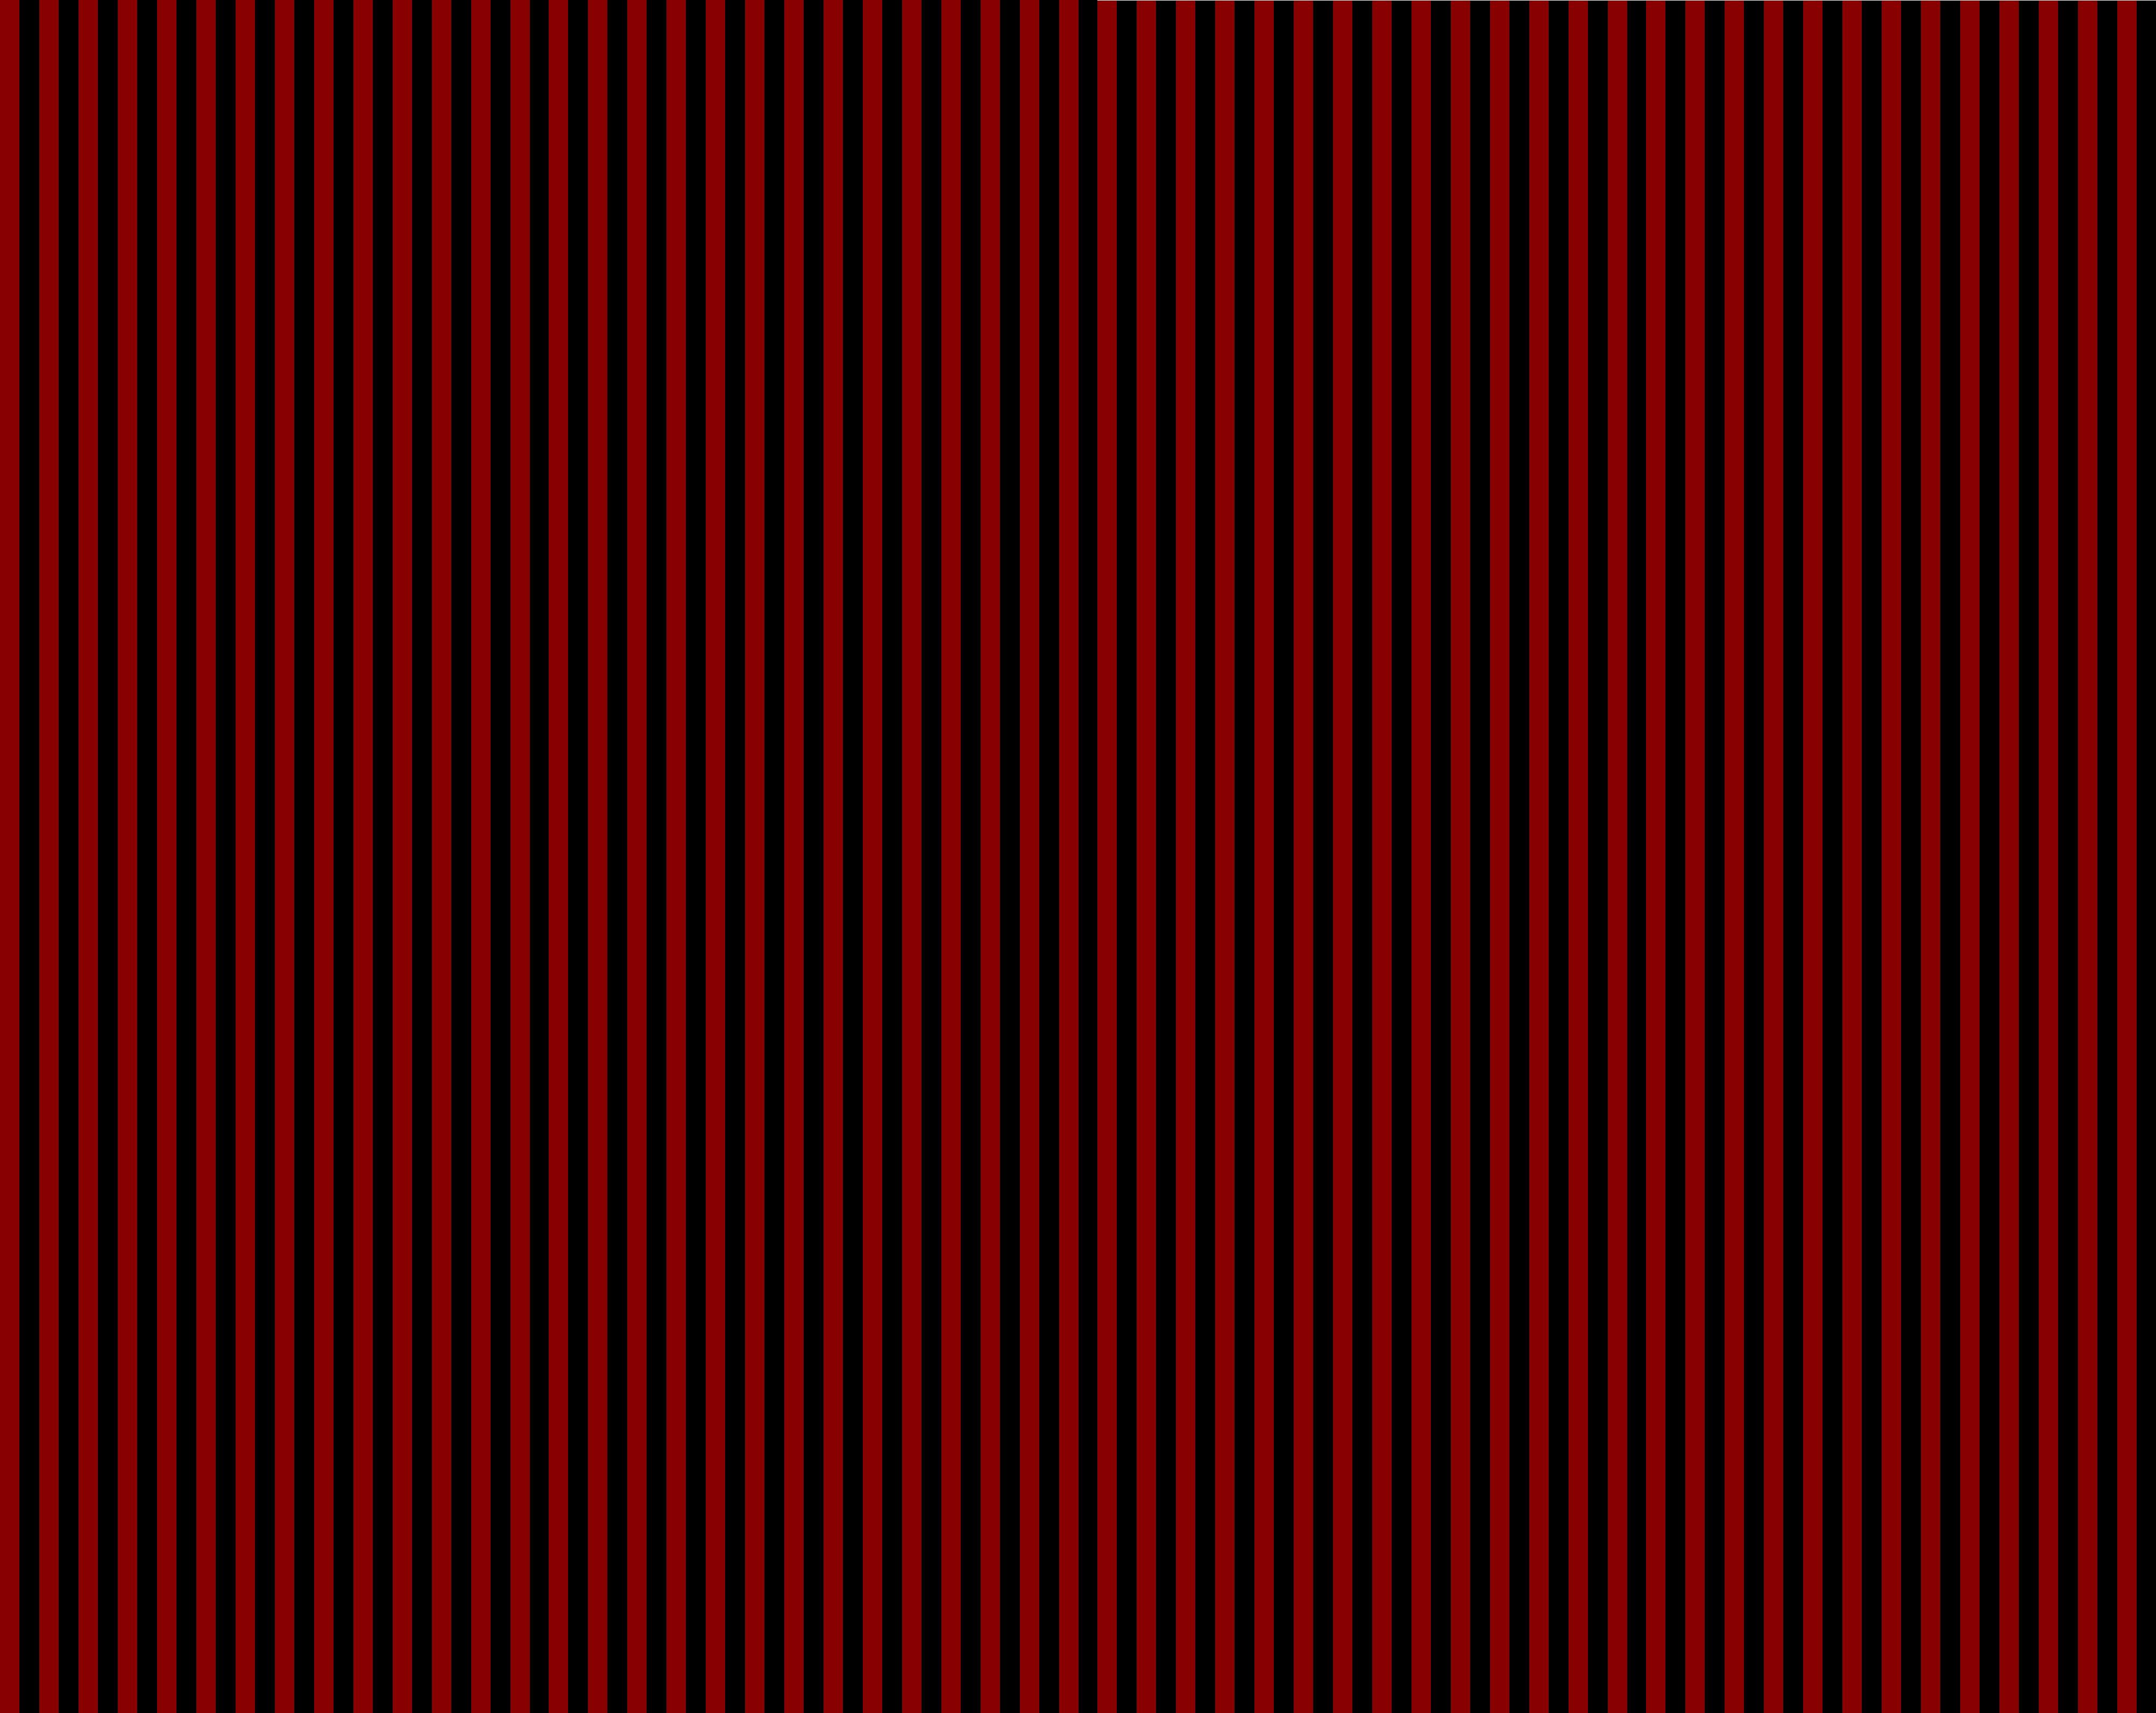 Black And Maroon Stripe Background By OmbraSova On DeviantArt